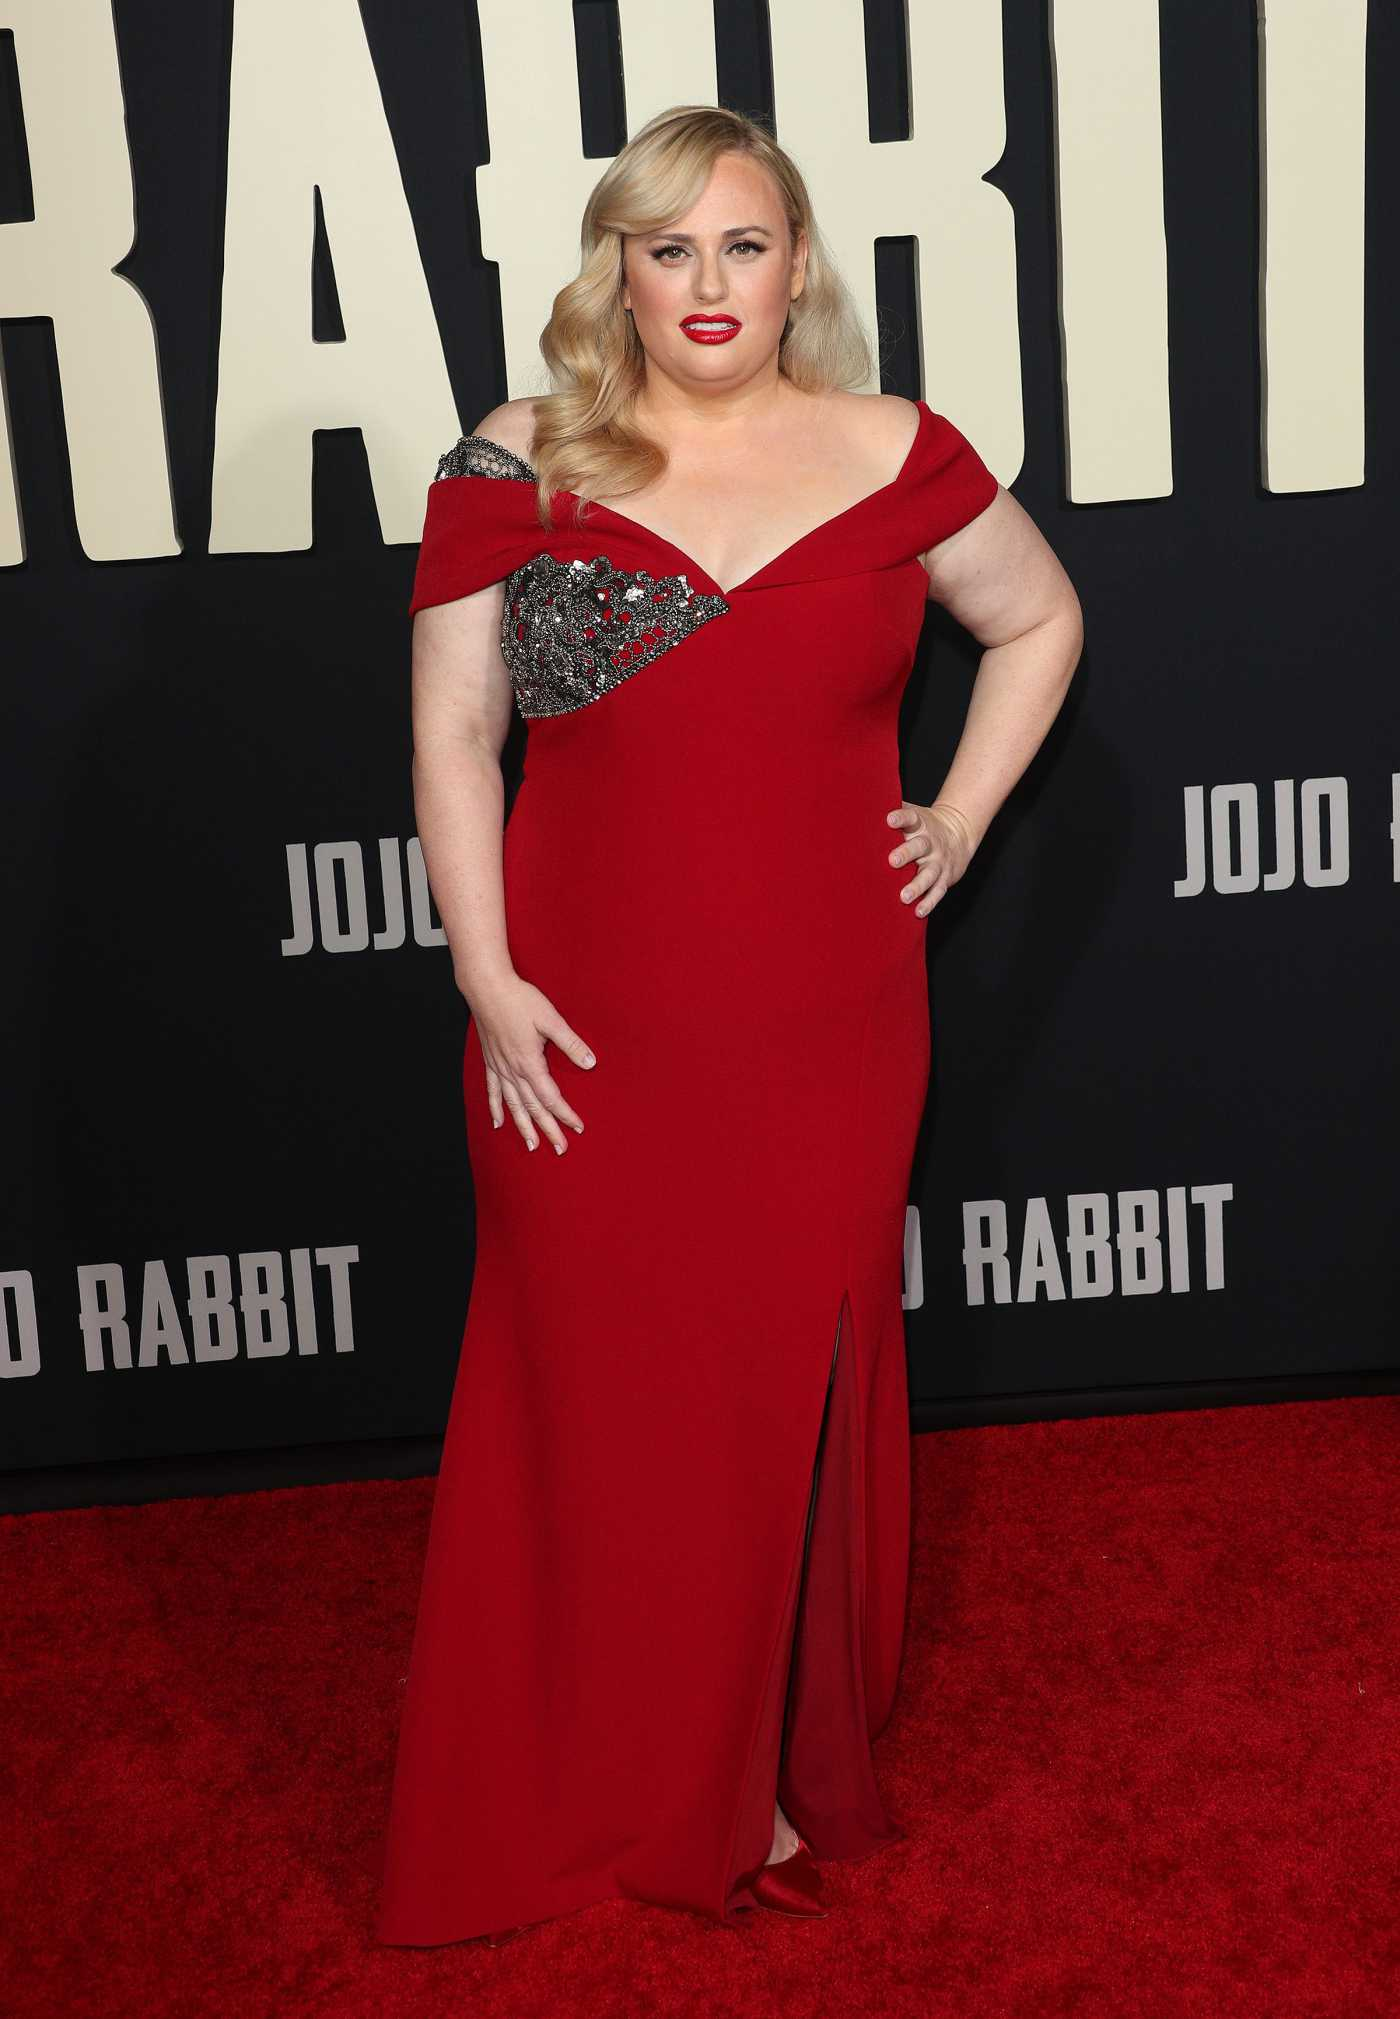 Rebel Wilson Attends Jojo Rabbit Premiere in Los Angeles 10/15/2019